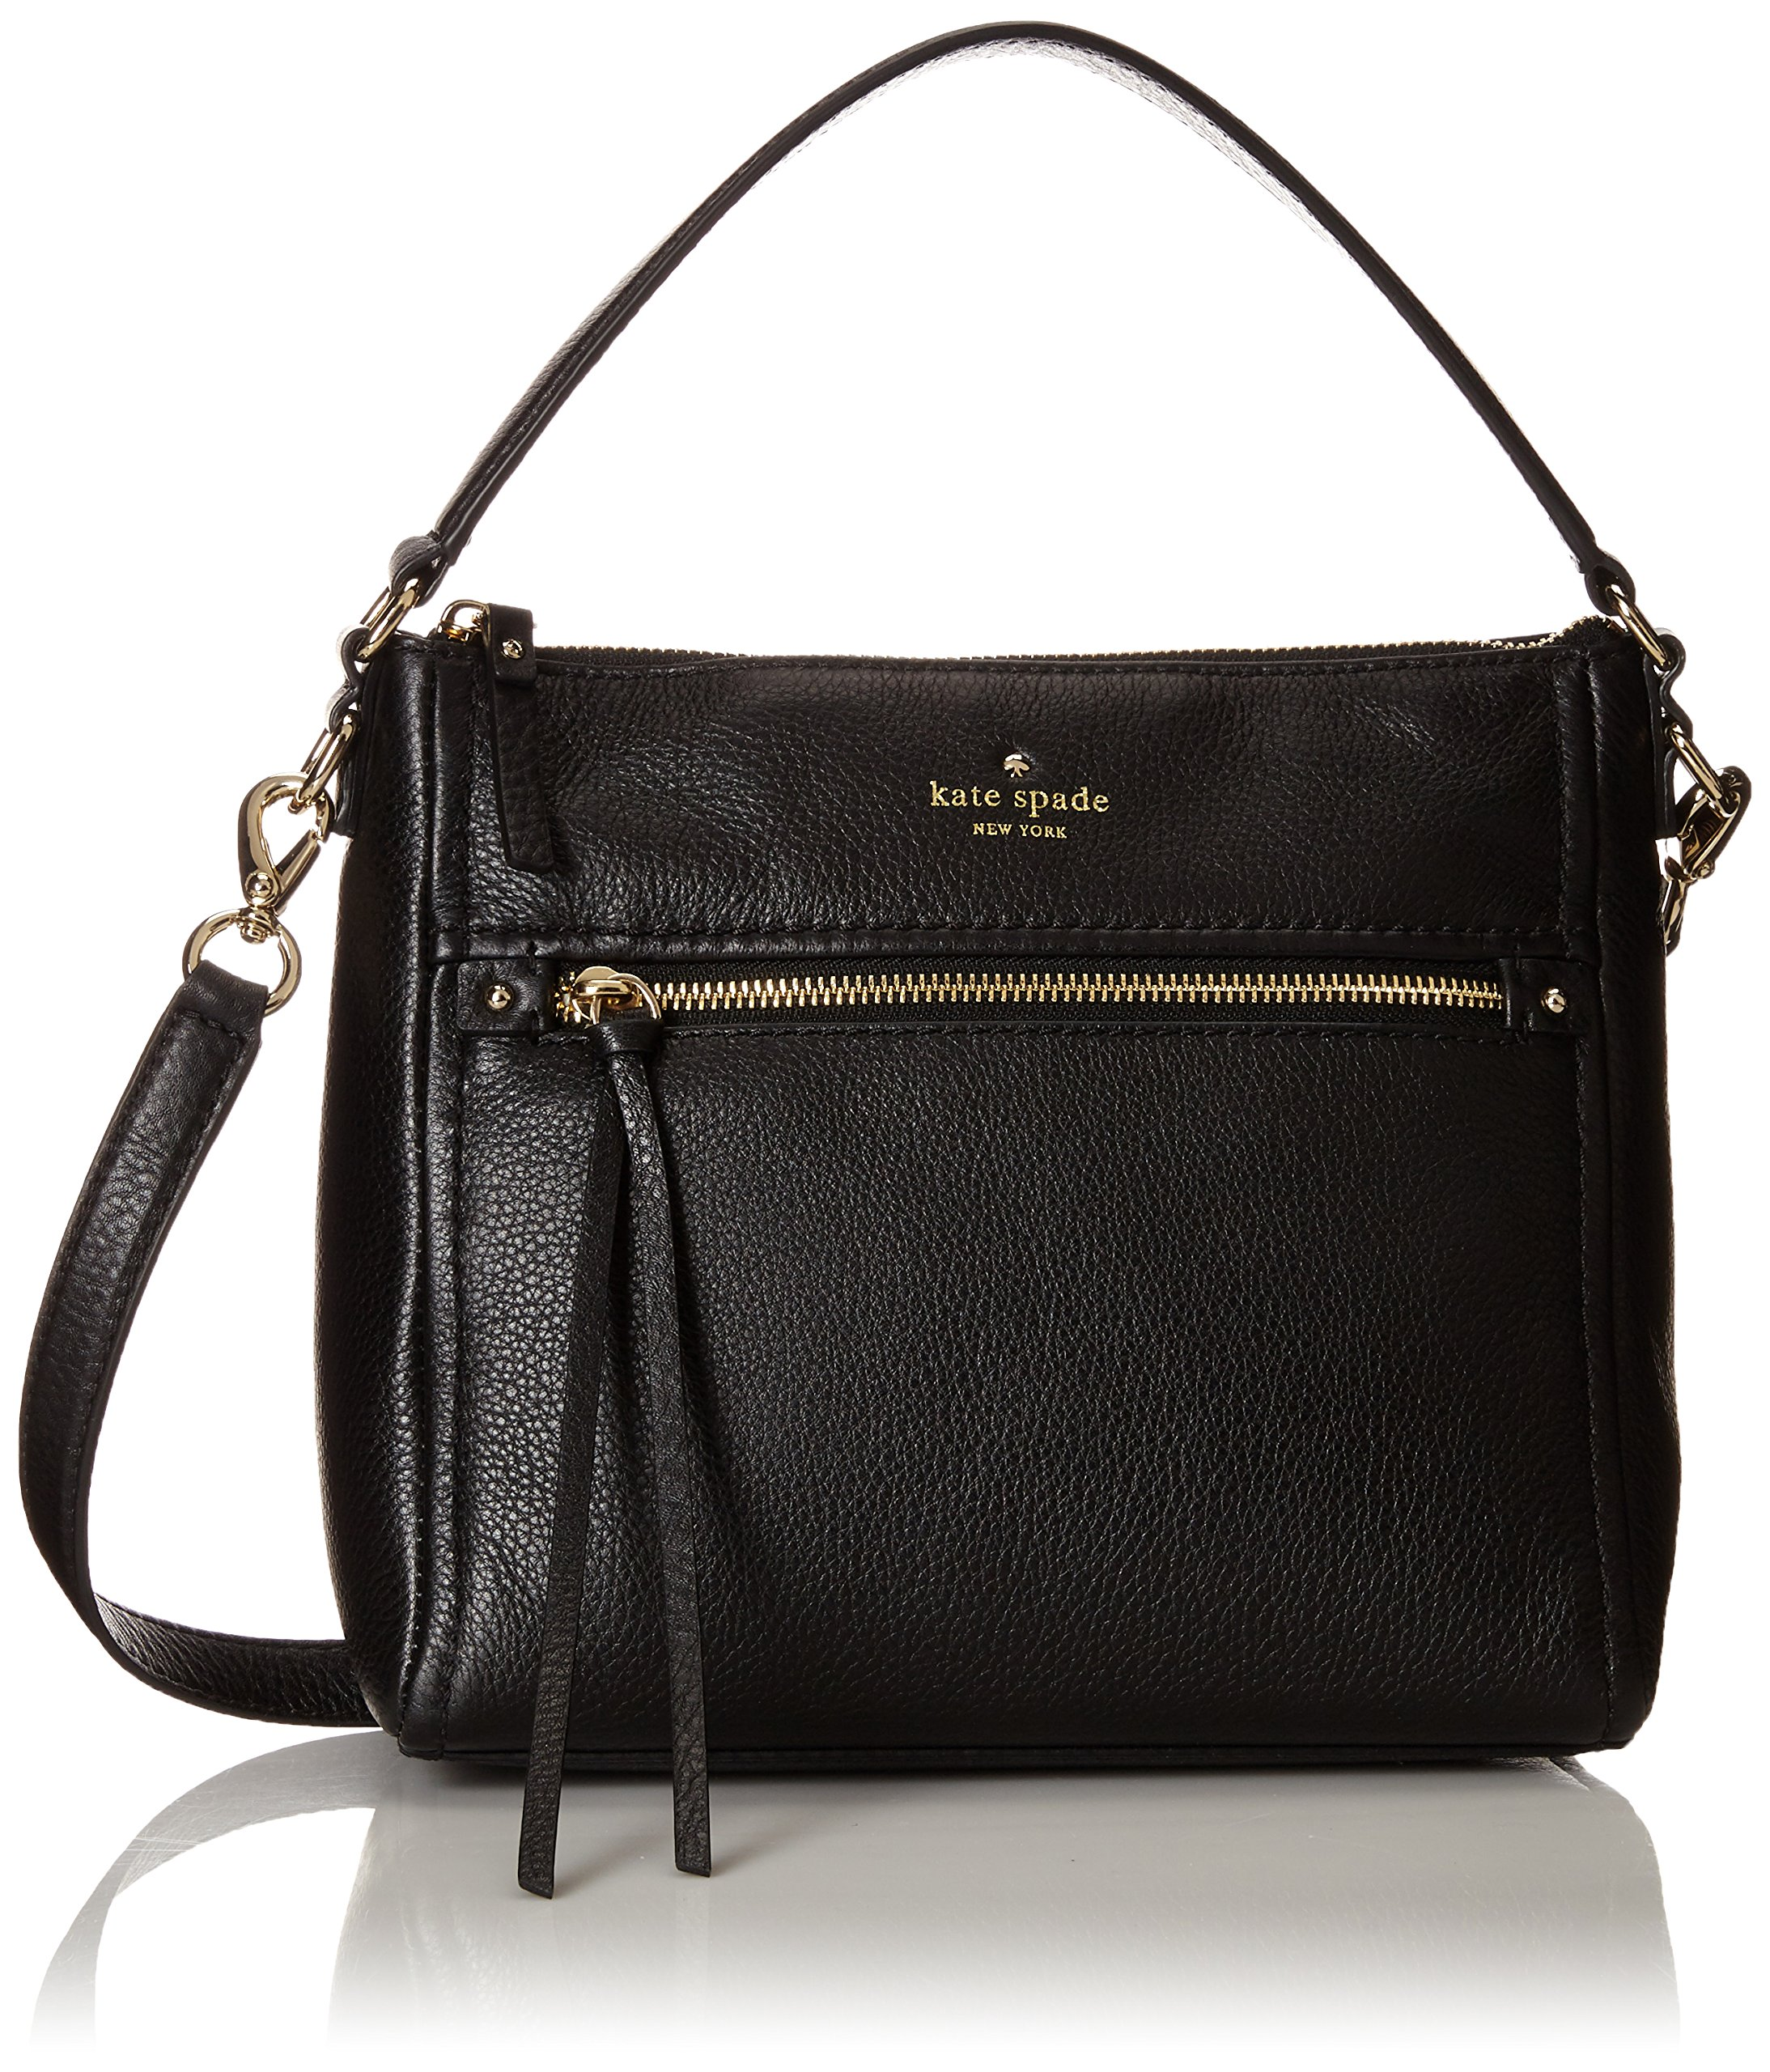 kate spade new york Cobble Hill Small Harris Shoulder Bag, Black, One Size by Kate Spade New York